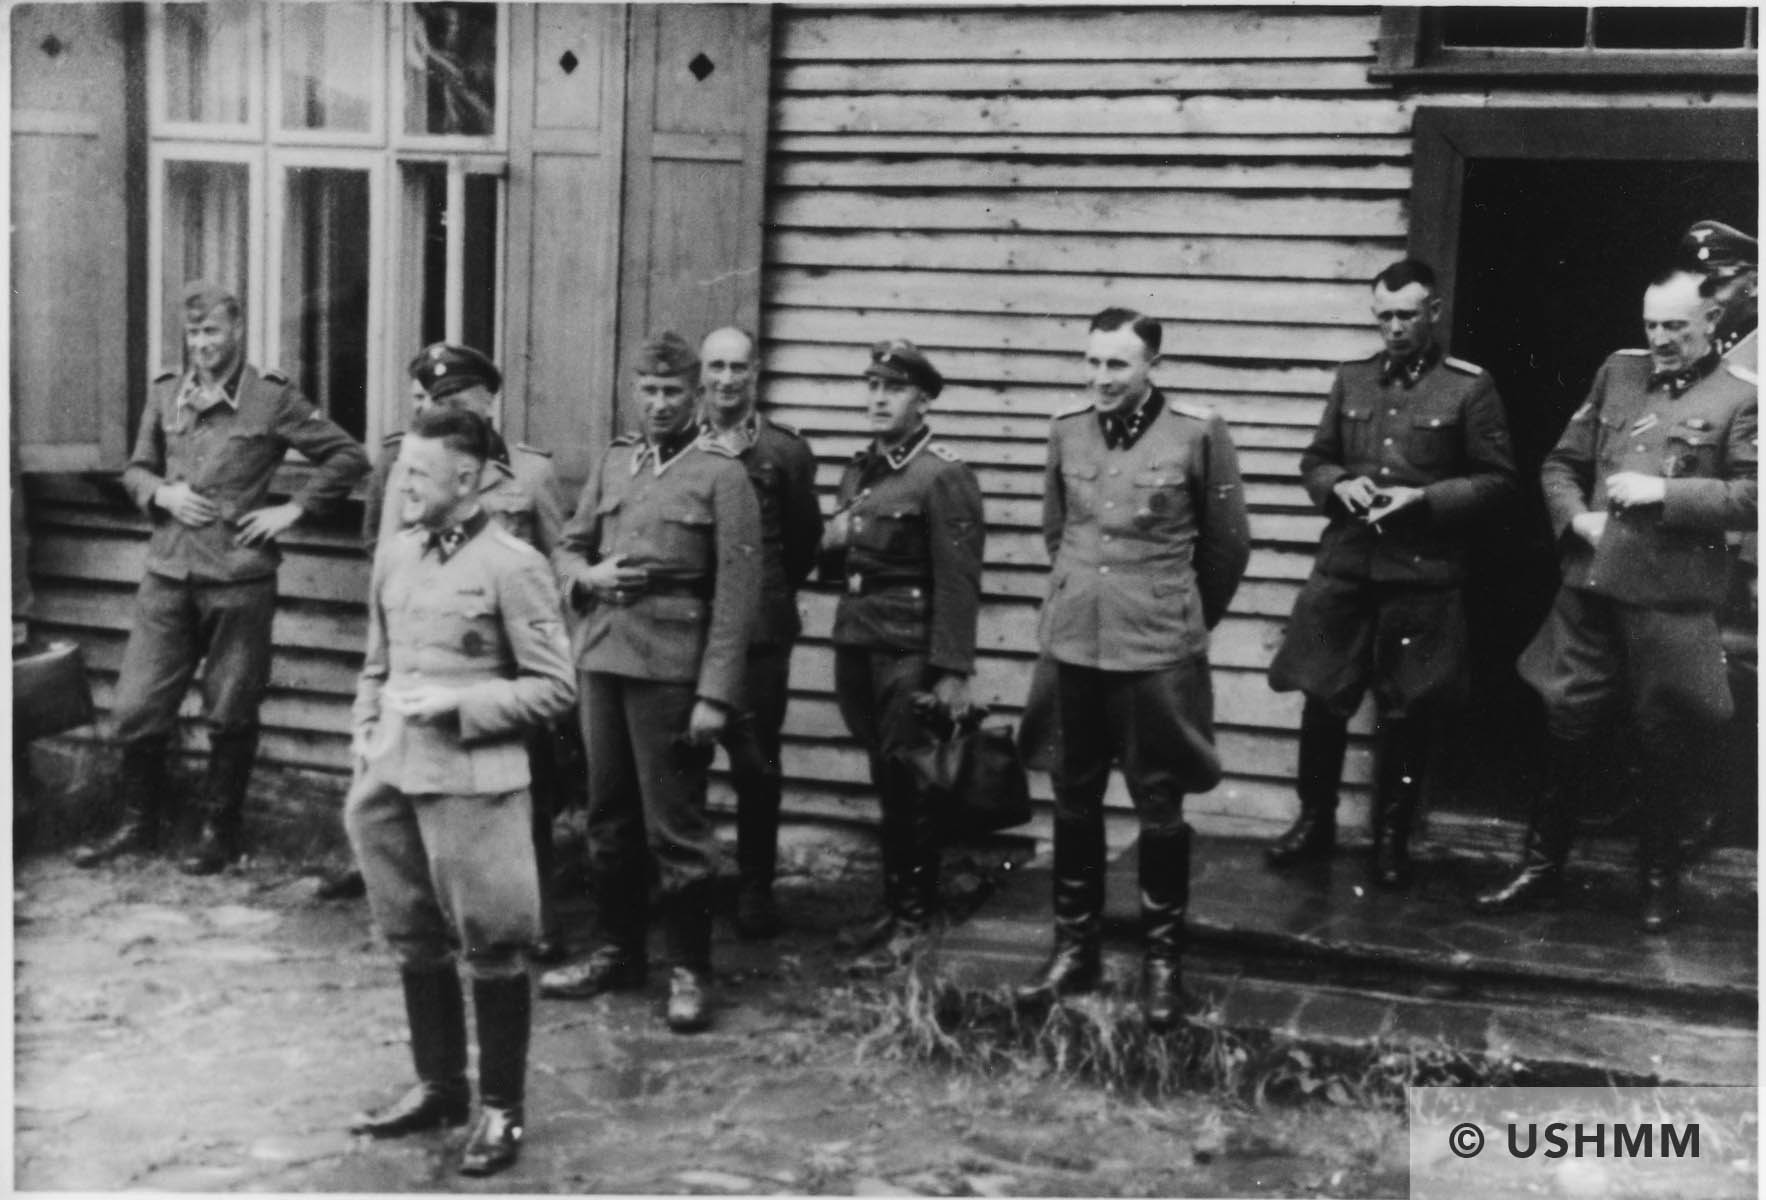 Group portrait of Nazi officers standing in front of a building in Solahütte. USHMM 34578